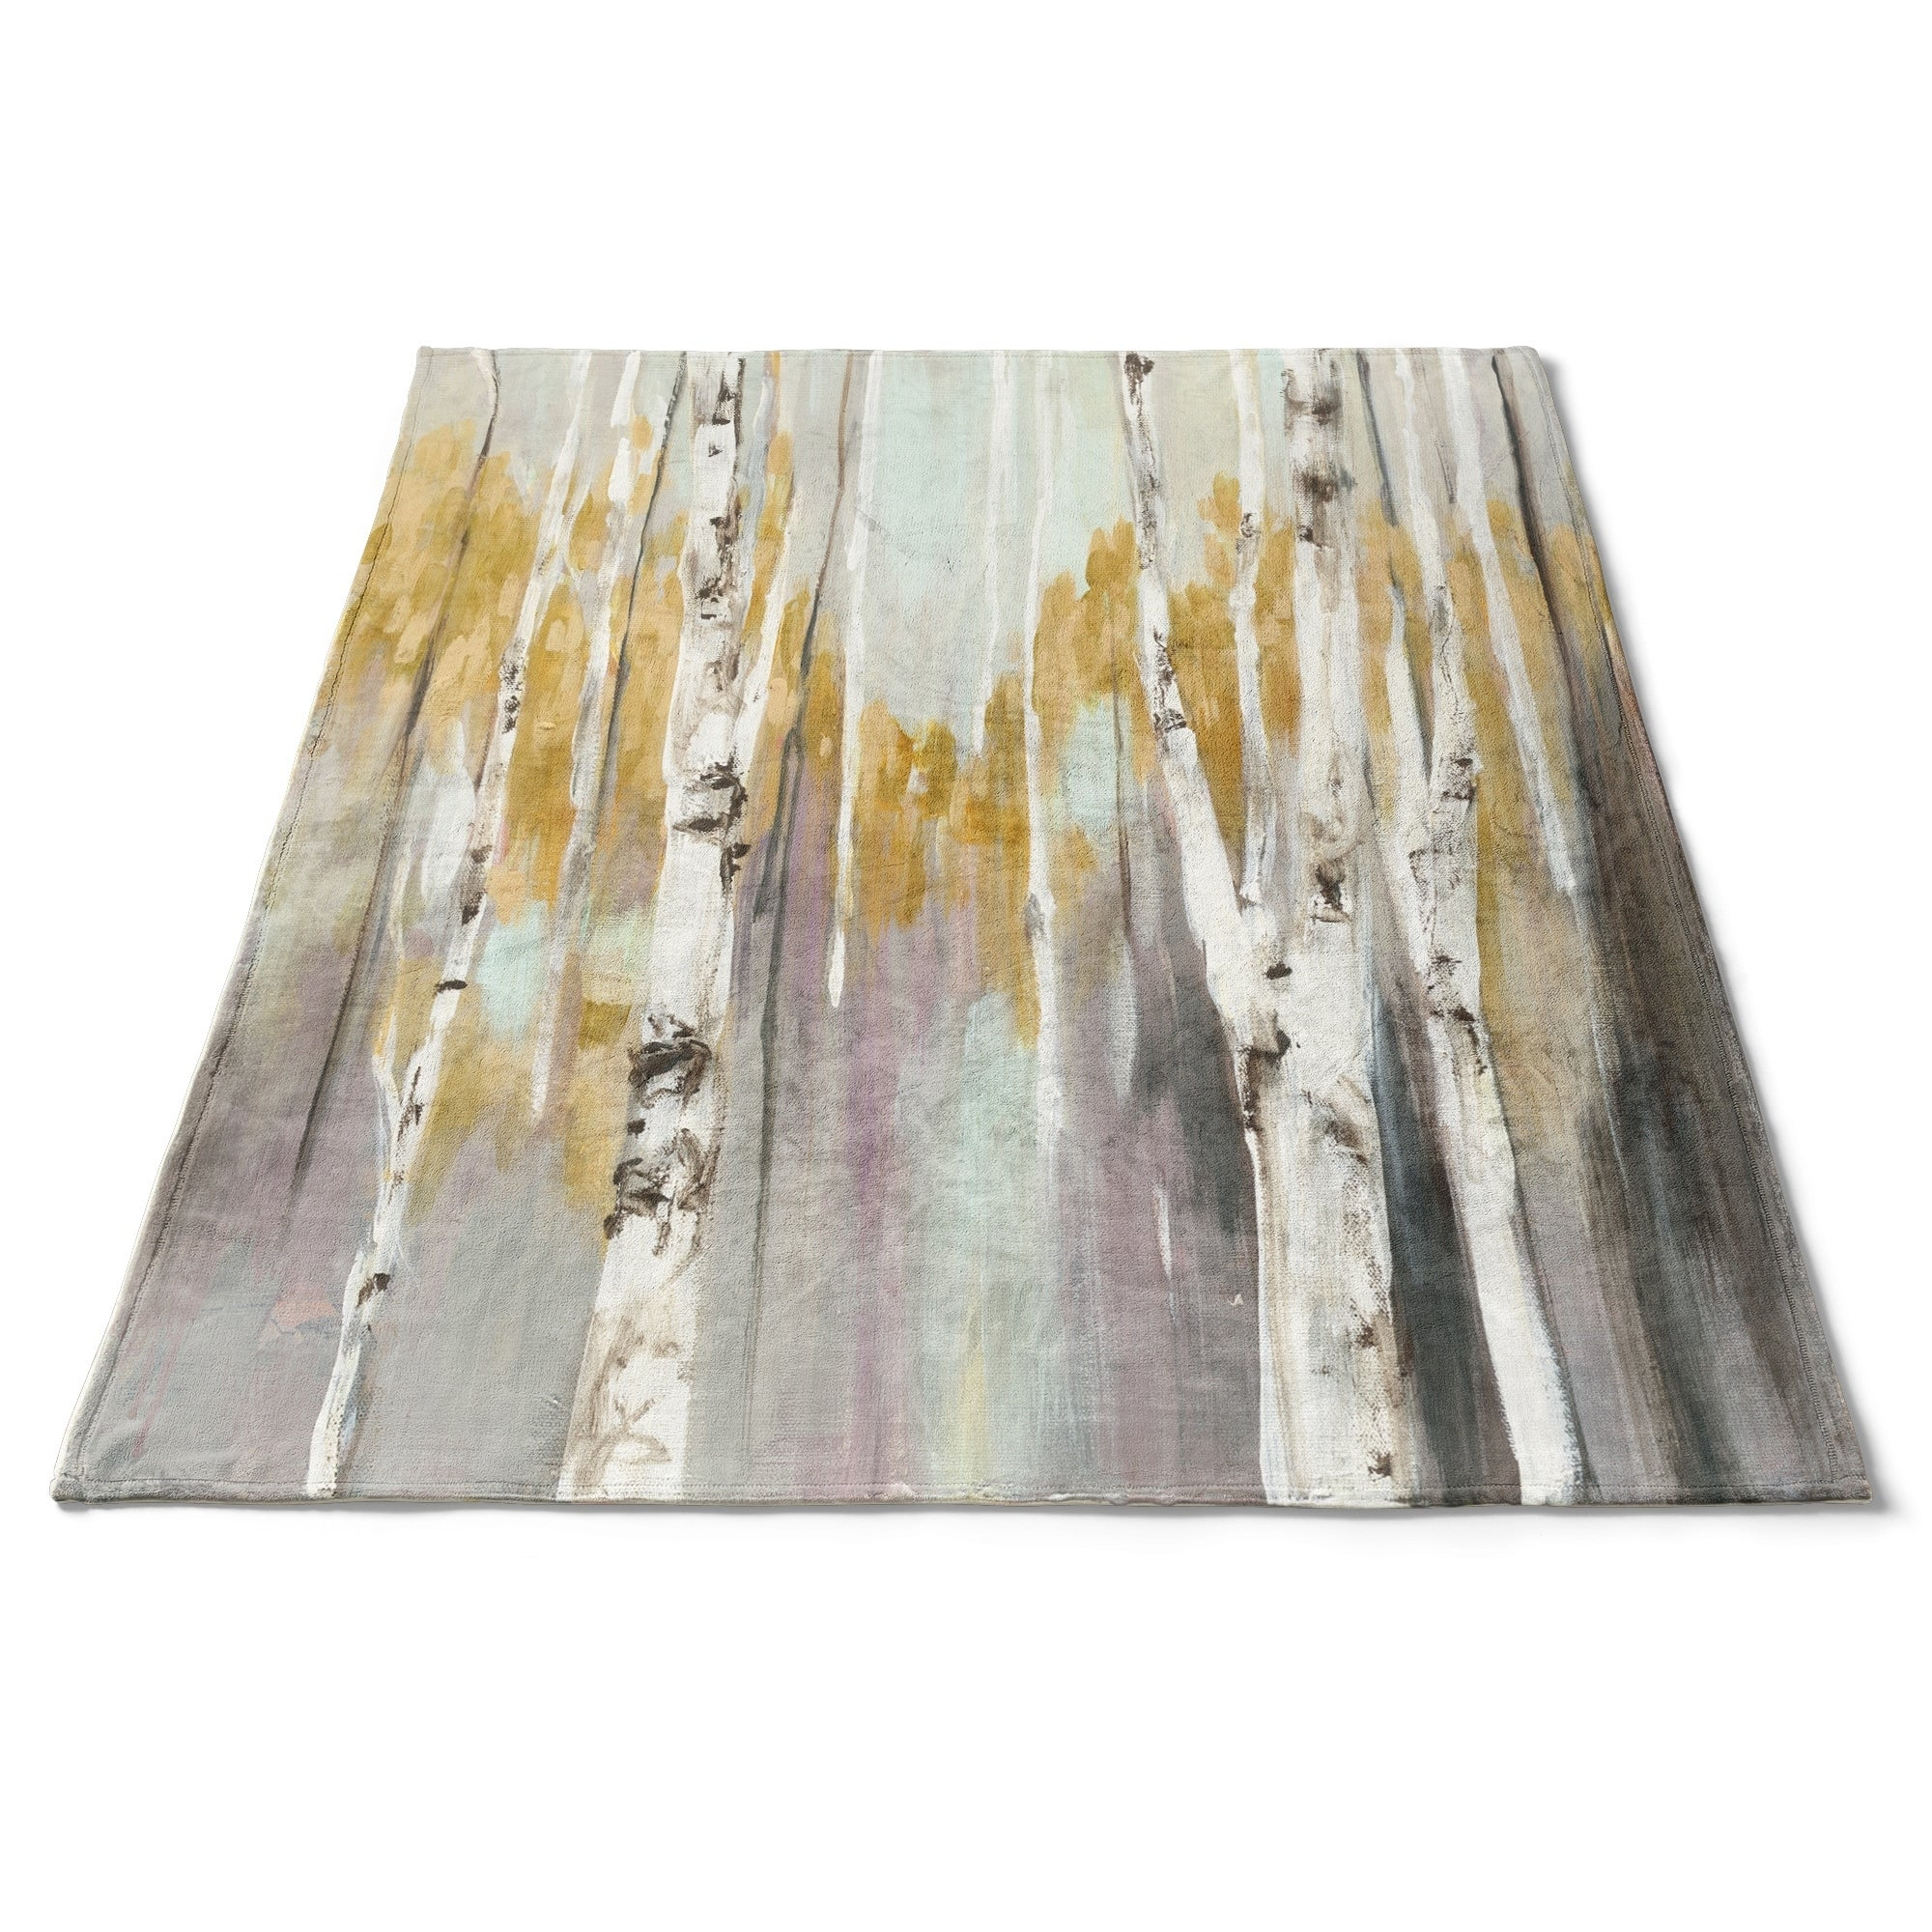 Designart Silver Birch Forest Ii Cottage Throw Blanket 71x59 On Sale Overstock 29846580